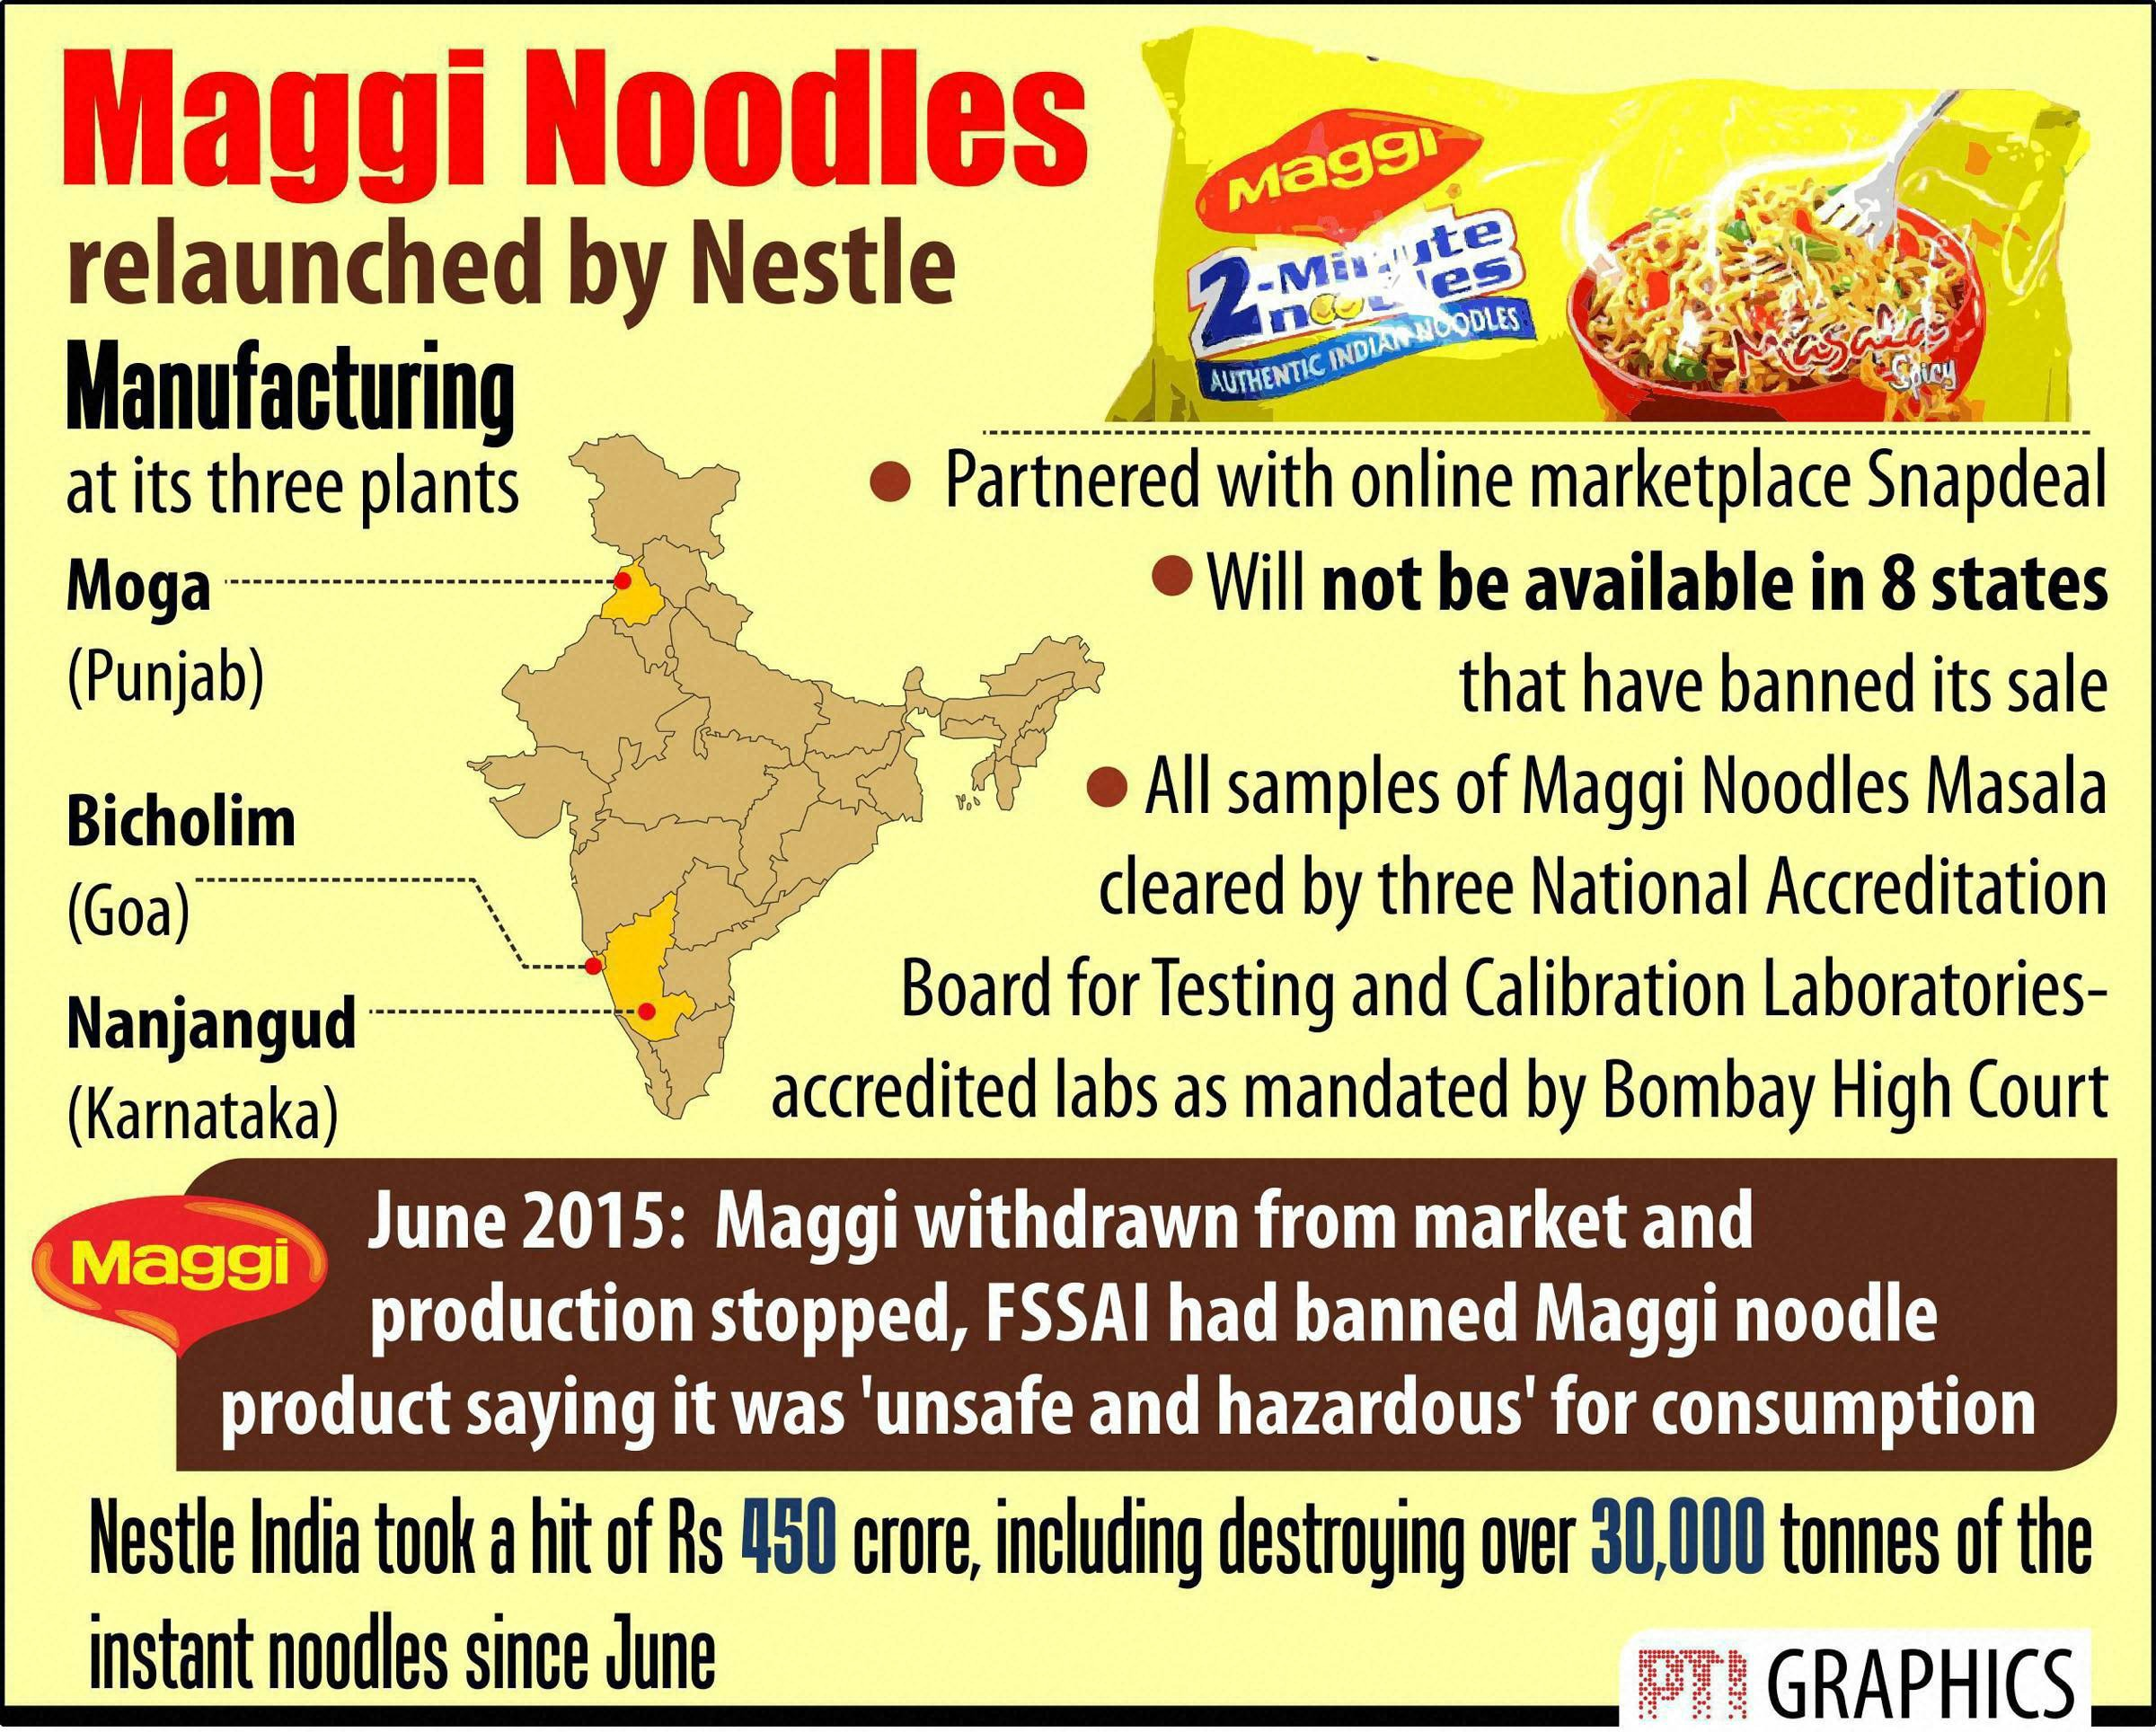 maggi noodles marketing plan